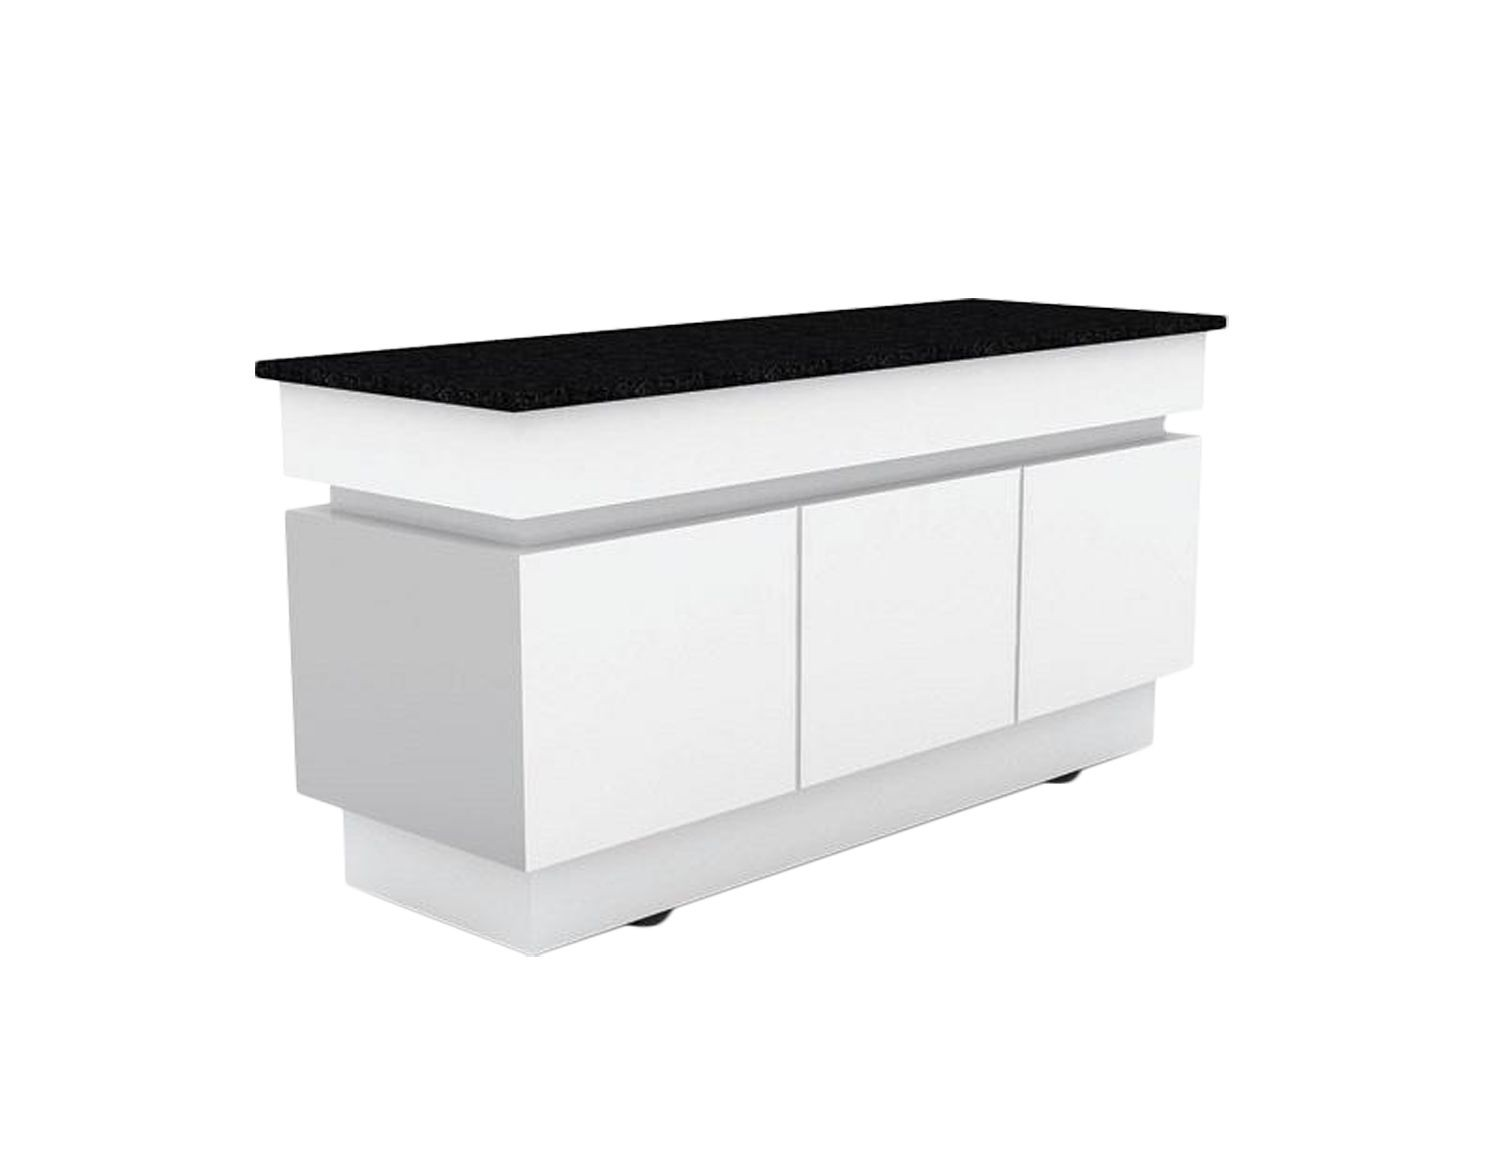 Bon Chef 50167 Recessed Top Buffet with Plain Top